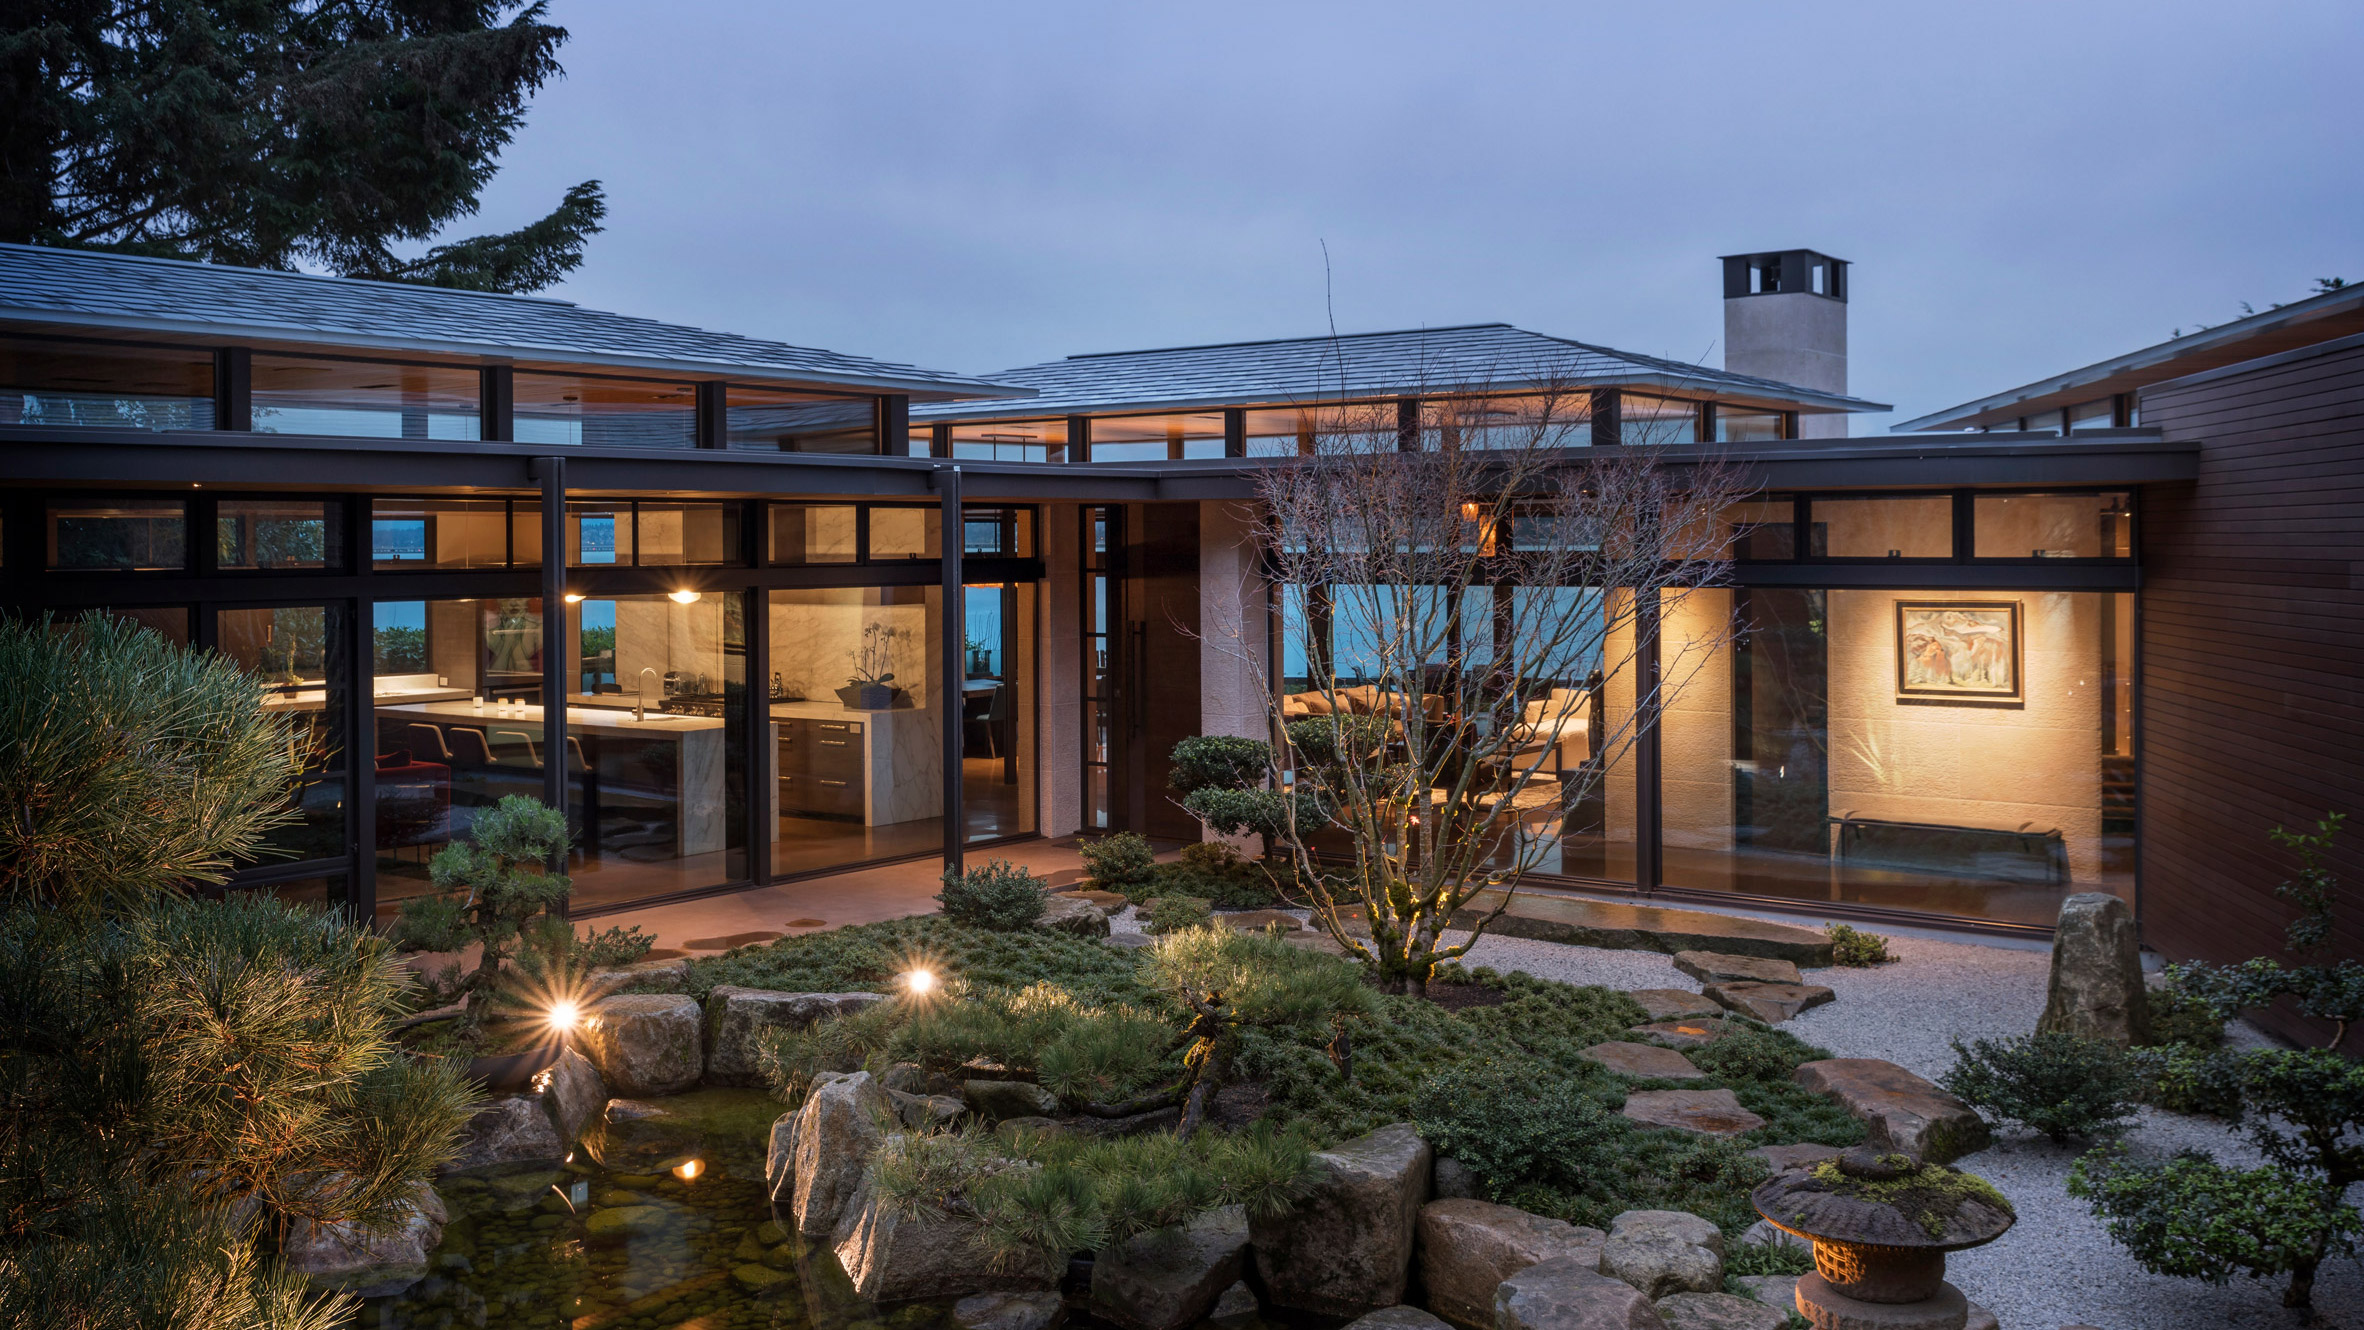 Japanese Garden Lies At Heart Of Seattle Residence By Stuart Silk Architects